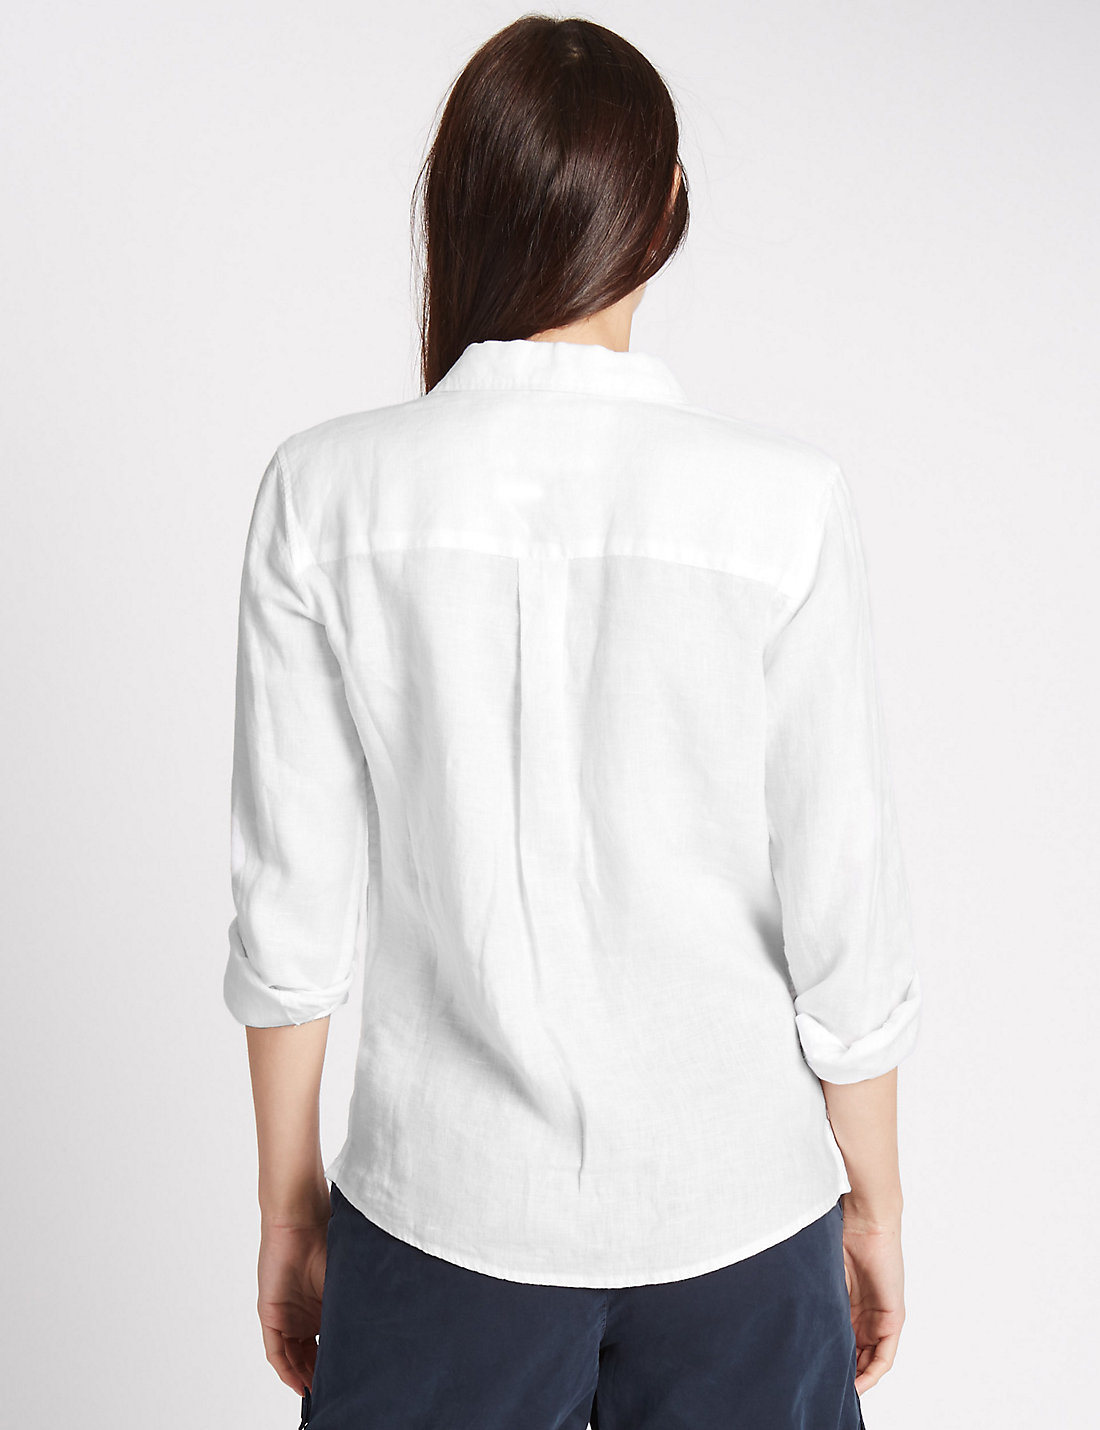 Fashion Women Pure Linen Long Sleeve Shirt